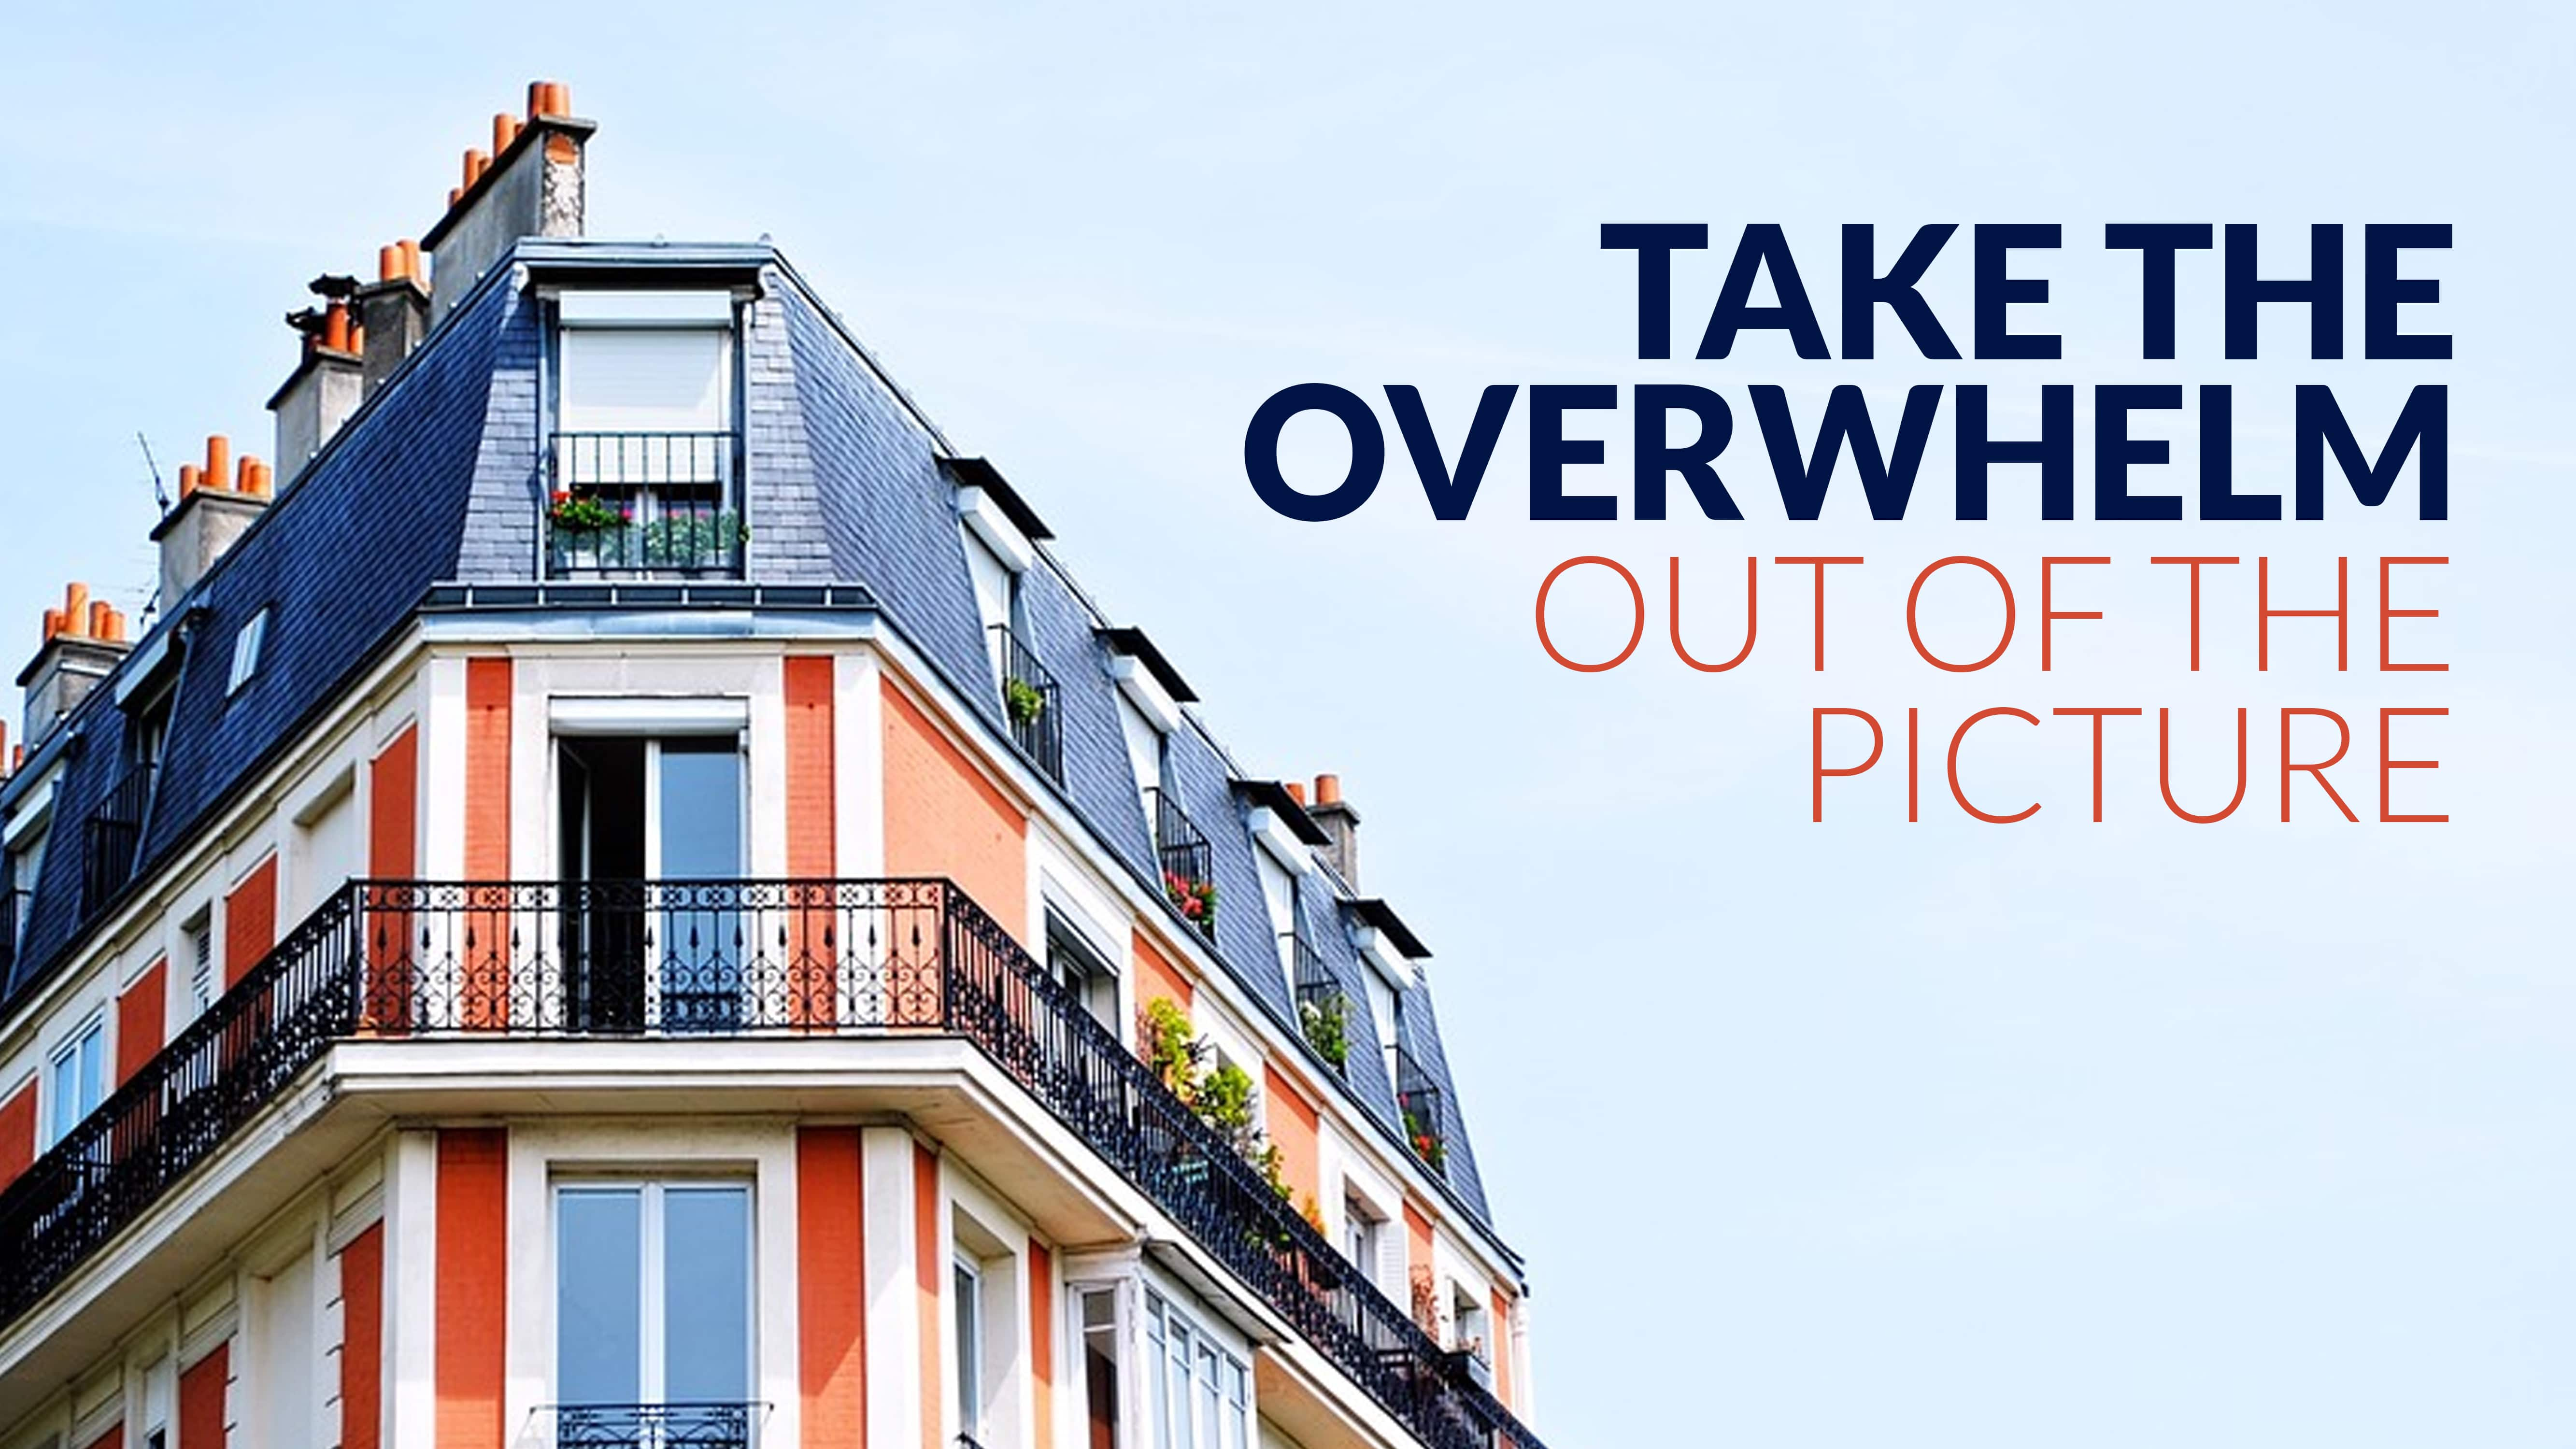 Take the overwhelm out of the picture